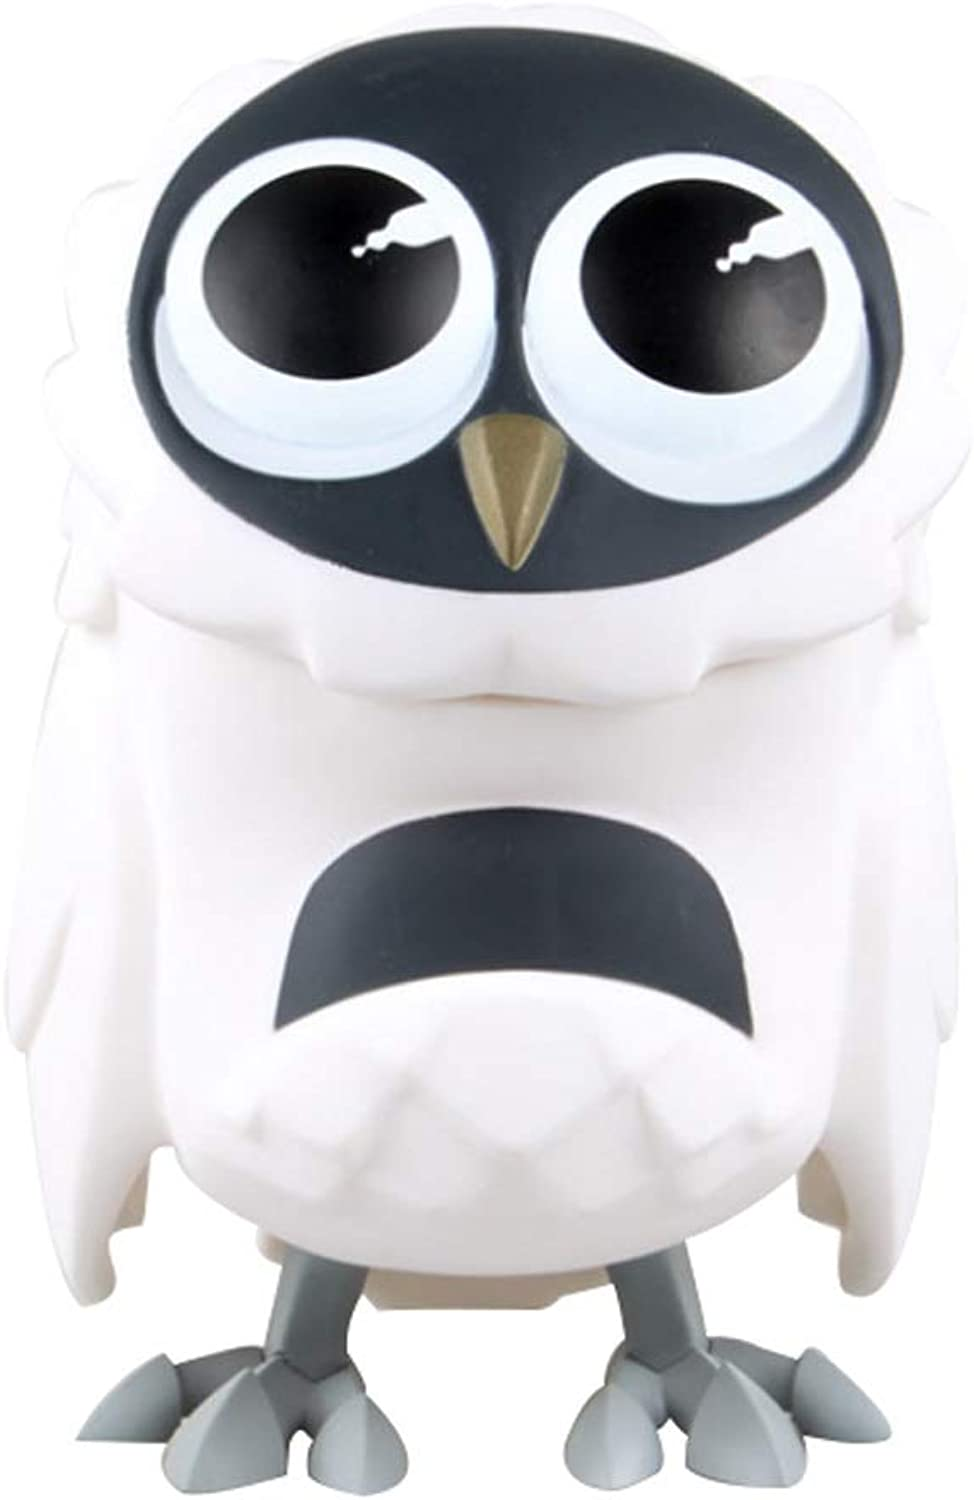 Owl Cute Thing Model Decoration Action Figure About 7 Inches High